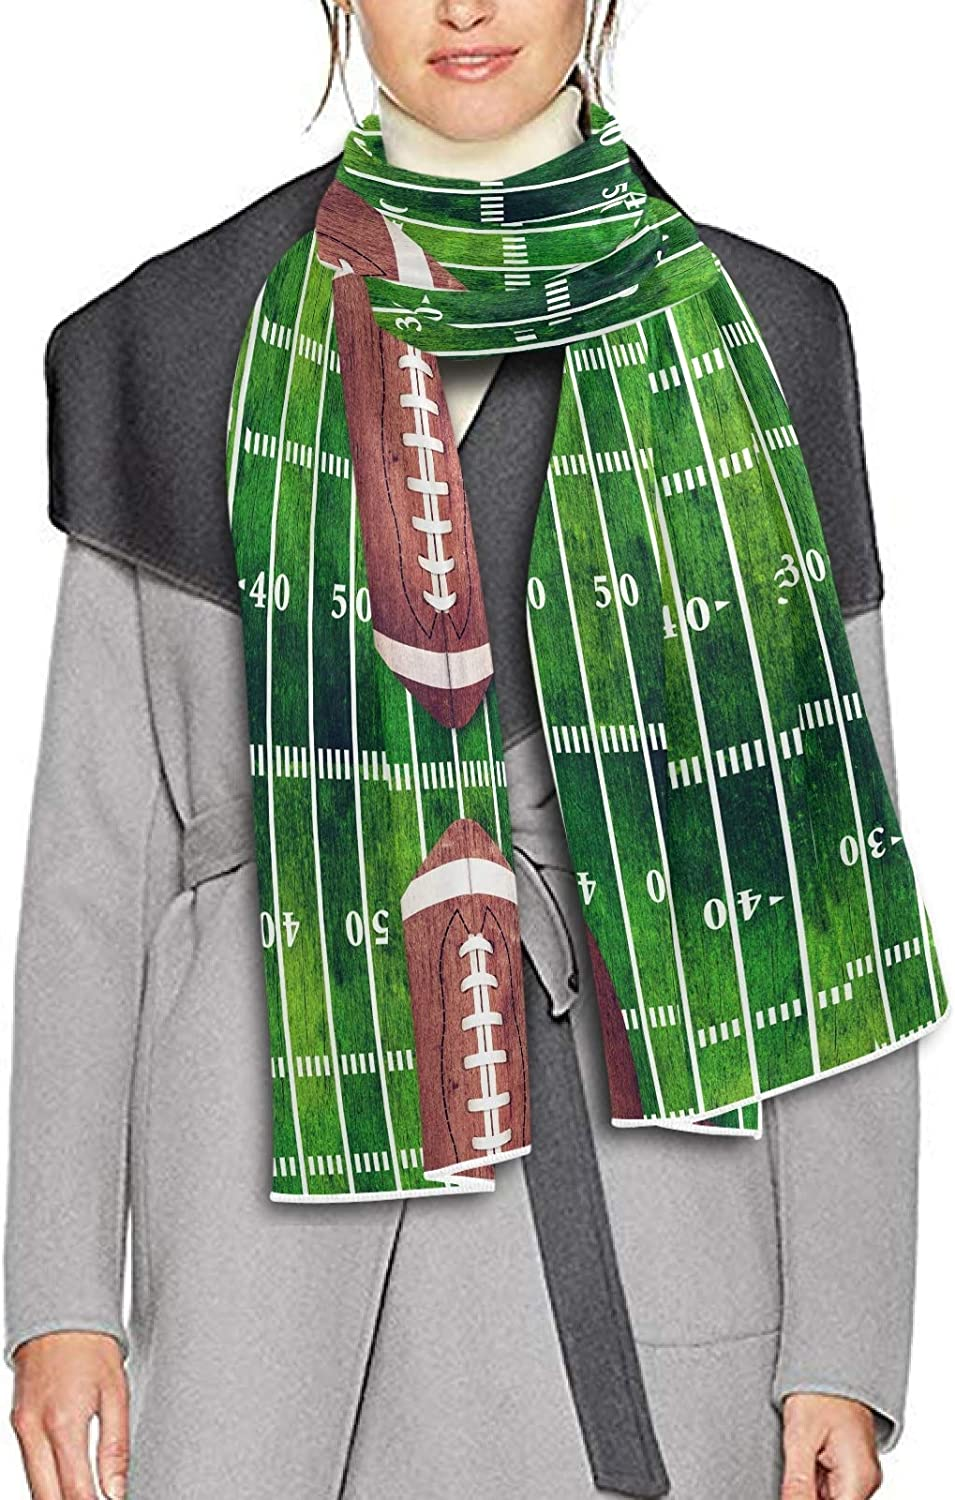 Scarf for Women and Men Football Field Shawl Wraps Blanket Scarf Thick Soft Winter Large Scarves Lightweight